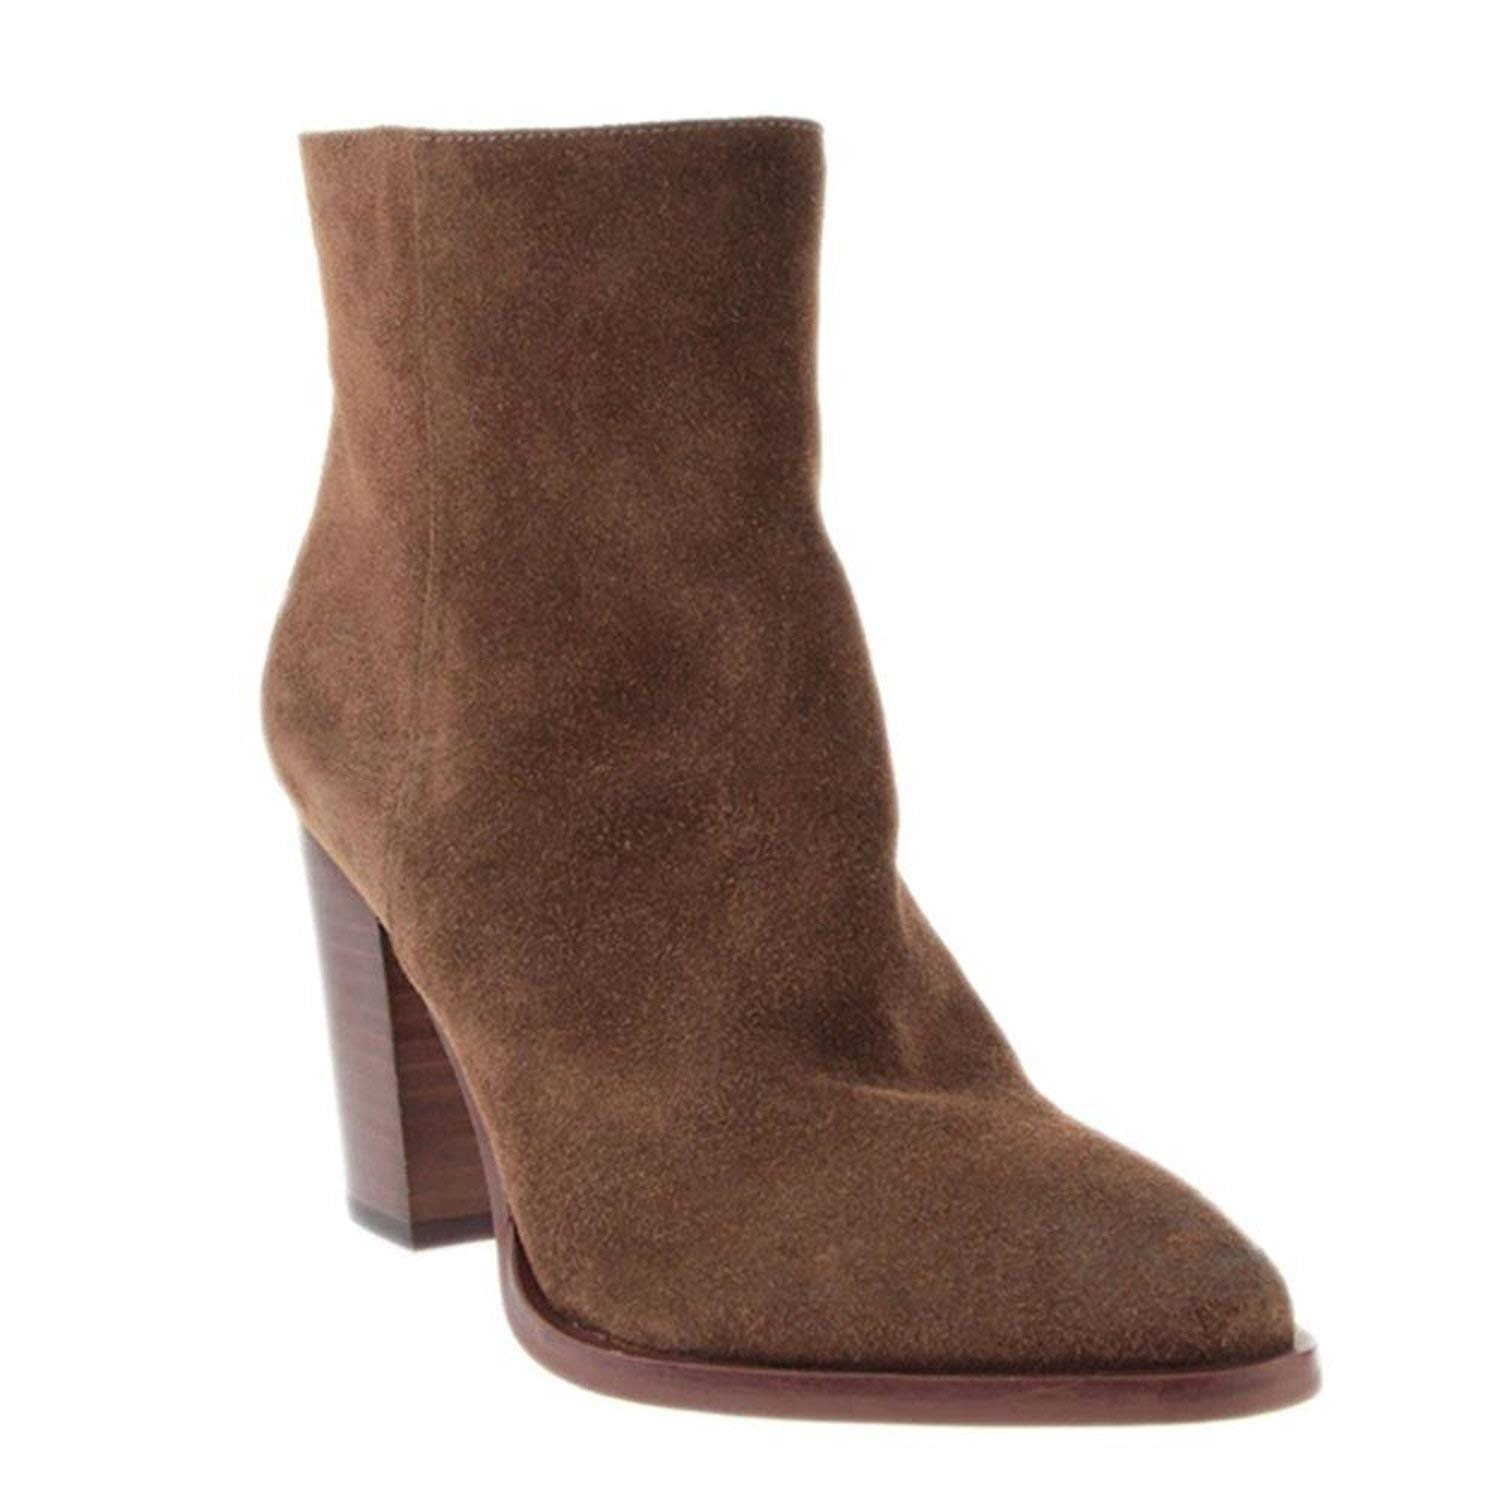 1174a26bf5067 Sam Edelman Womens Blake Closed Toe Ankle Fashion Boots